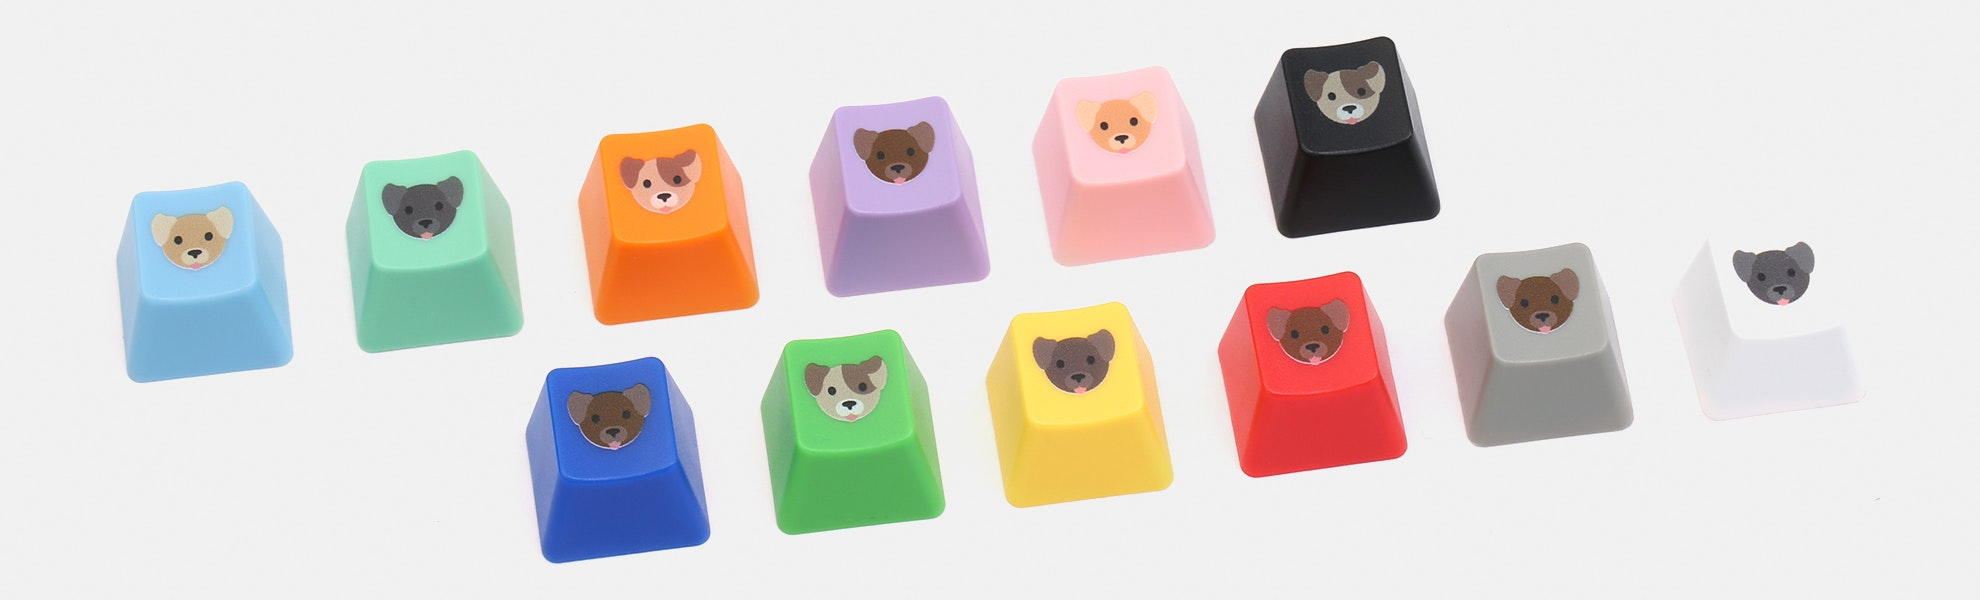 Cherry Puppy Novelty Keycaps